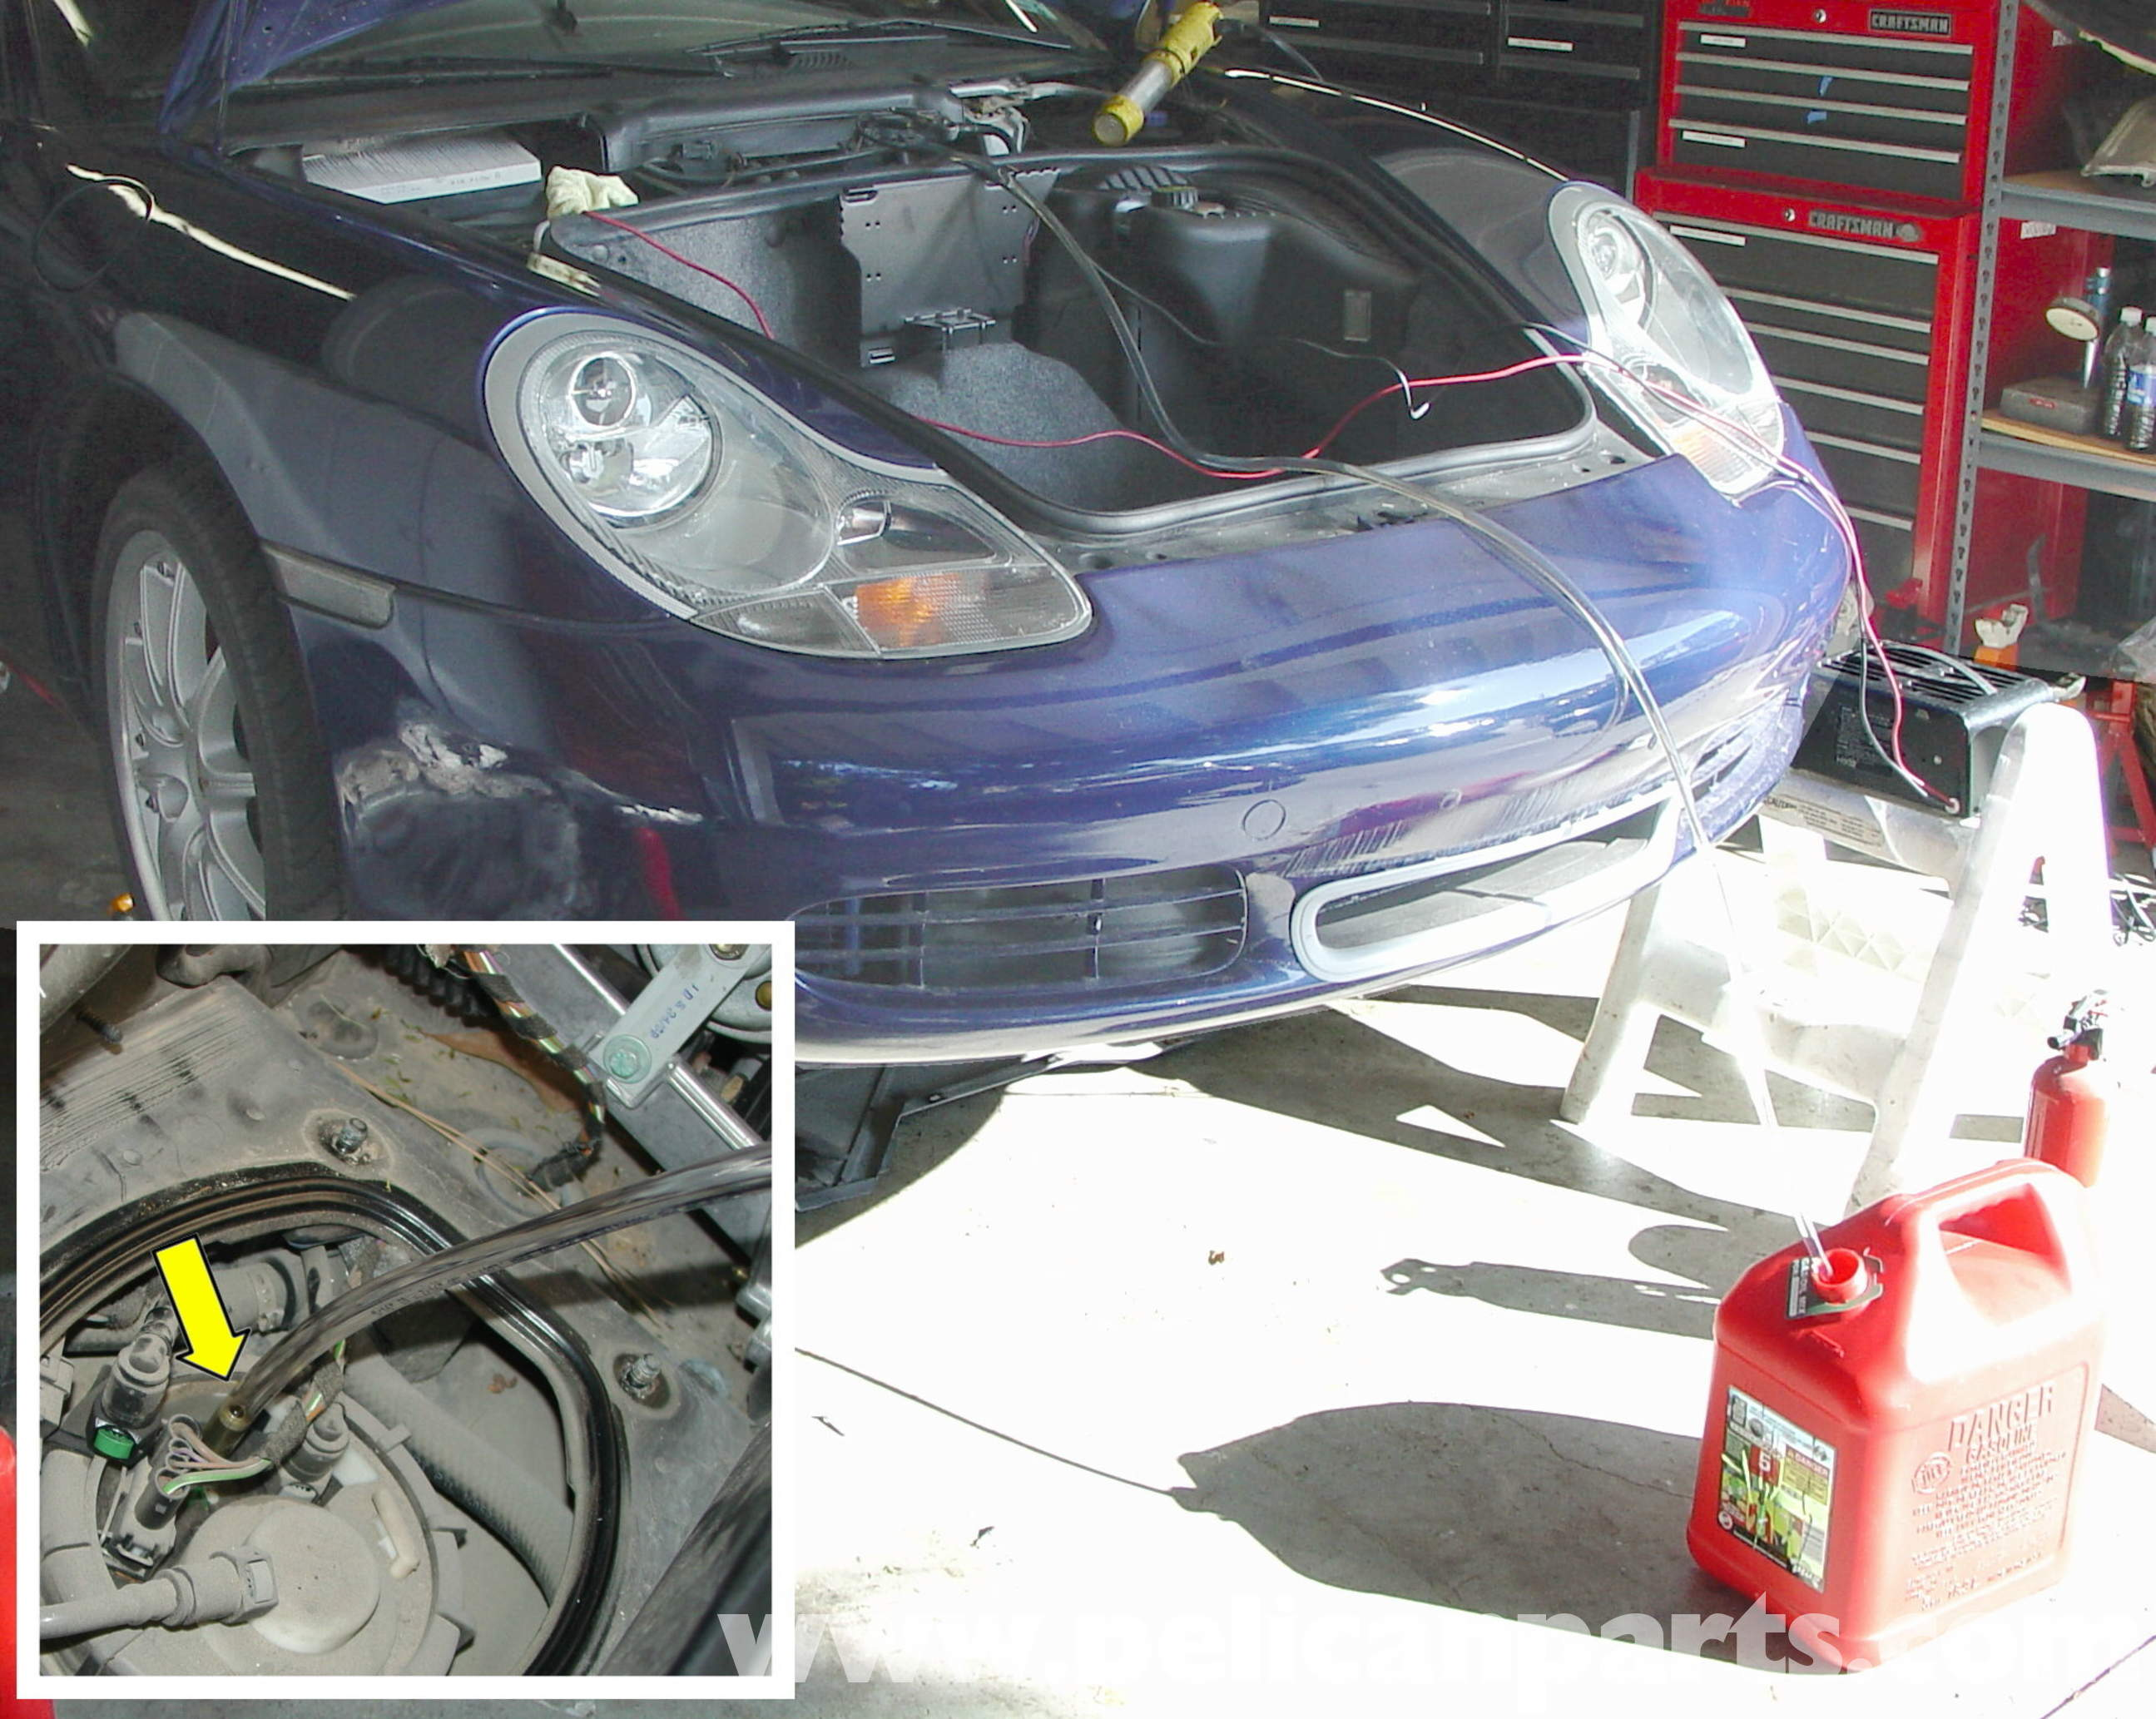 Porsche Boxster 1998 Fuse Box Diagram Not Lossing Wiring 2001 Fuel Pump Relay Location Get Free Image Owners Manual